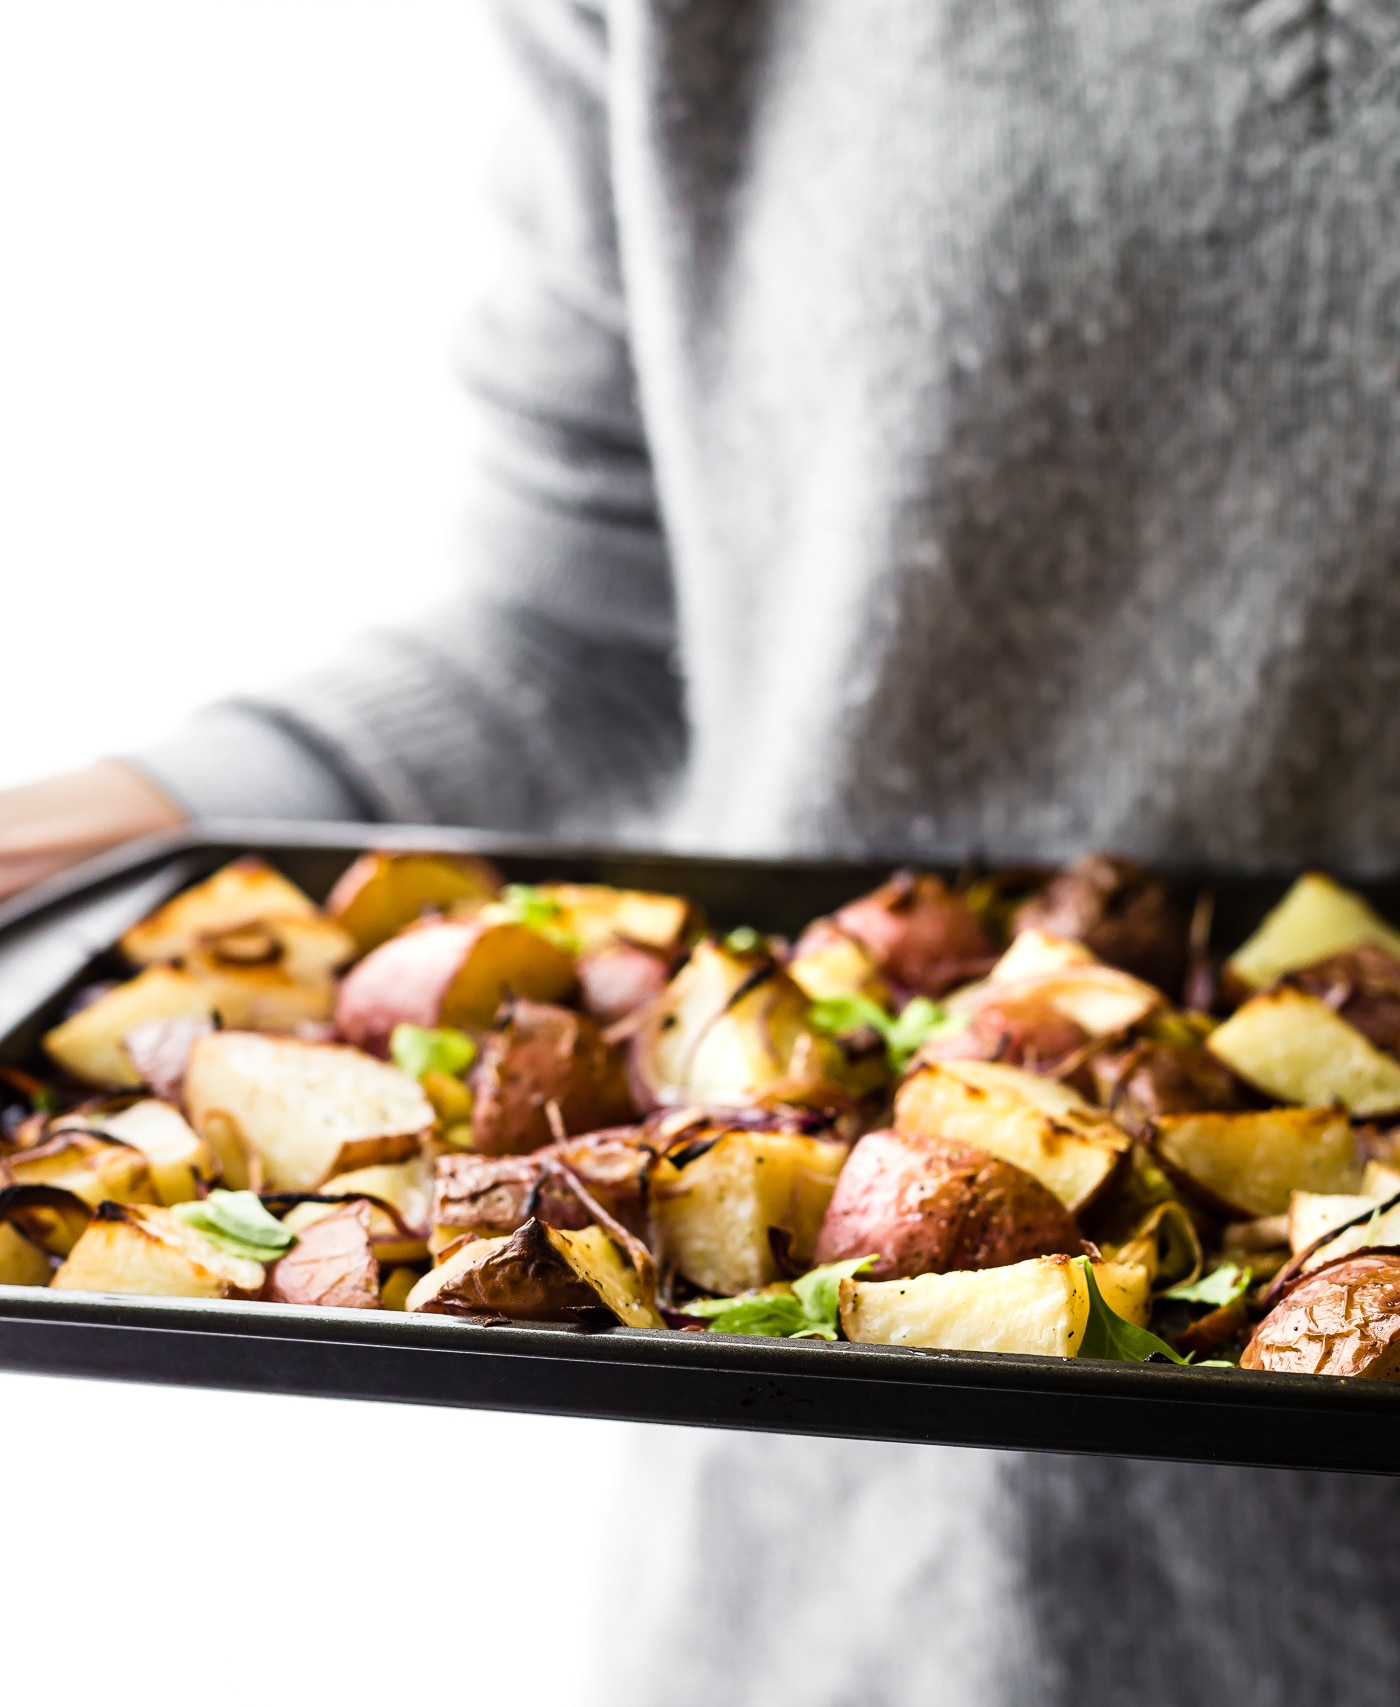 Holding a pan of roasted Leek and Potato! This Vegetable Pan Roast is packed with Seasonal Leek, Potato, and Steamed Spinach Greens! A flavorful, healthy, and easy to make side dish you can make all in one pan! A paleo/vegan Spring recipe perfect for any gathering. Whole 30 friendly!